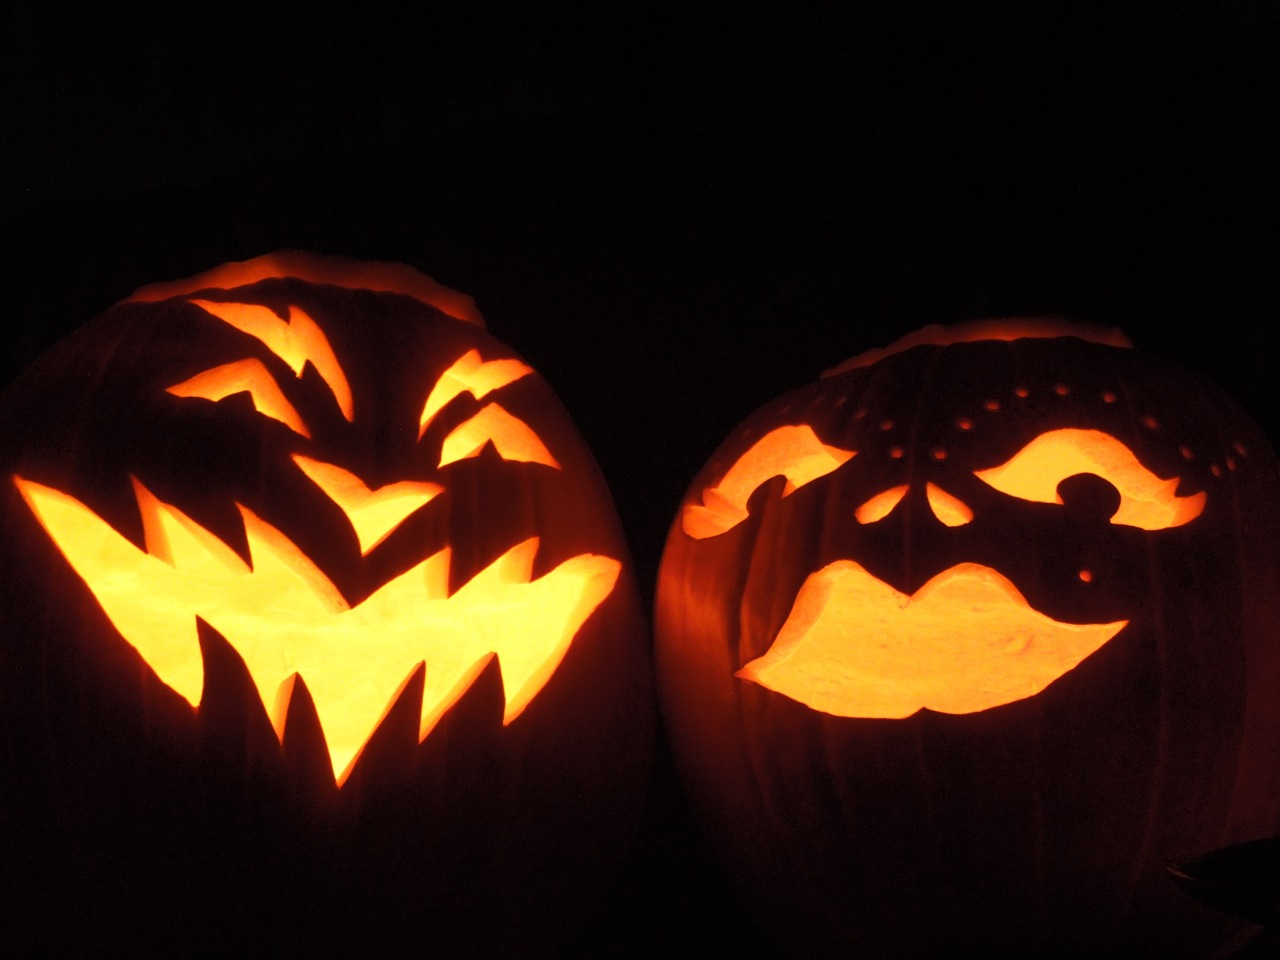 Halloween Jack O 39 Lanterns: halloween pumpkin carving ideas